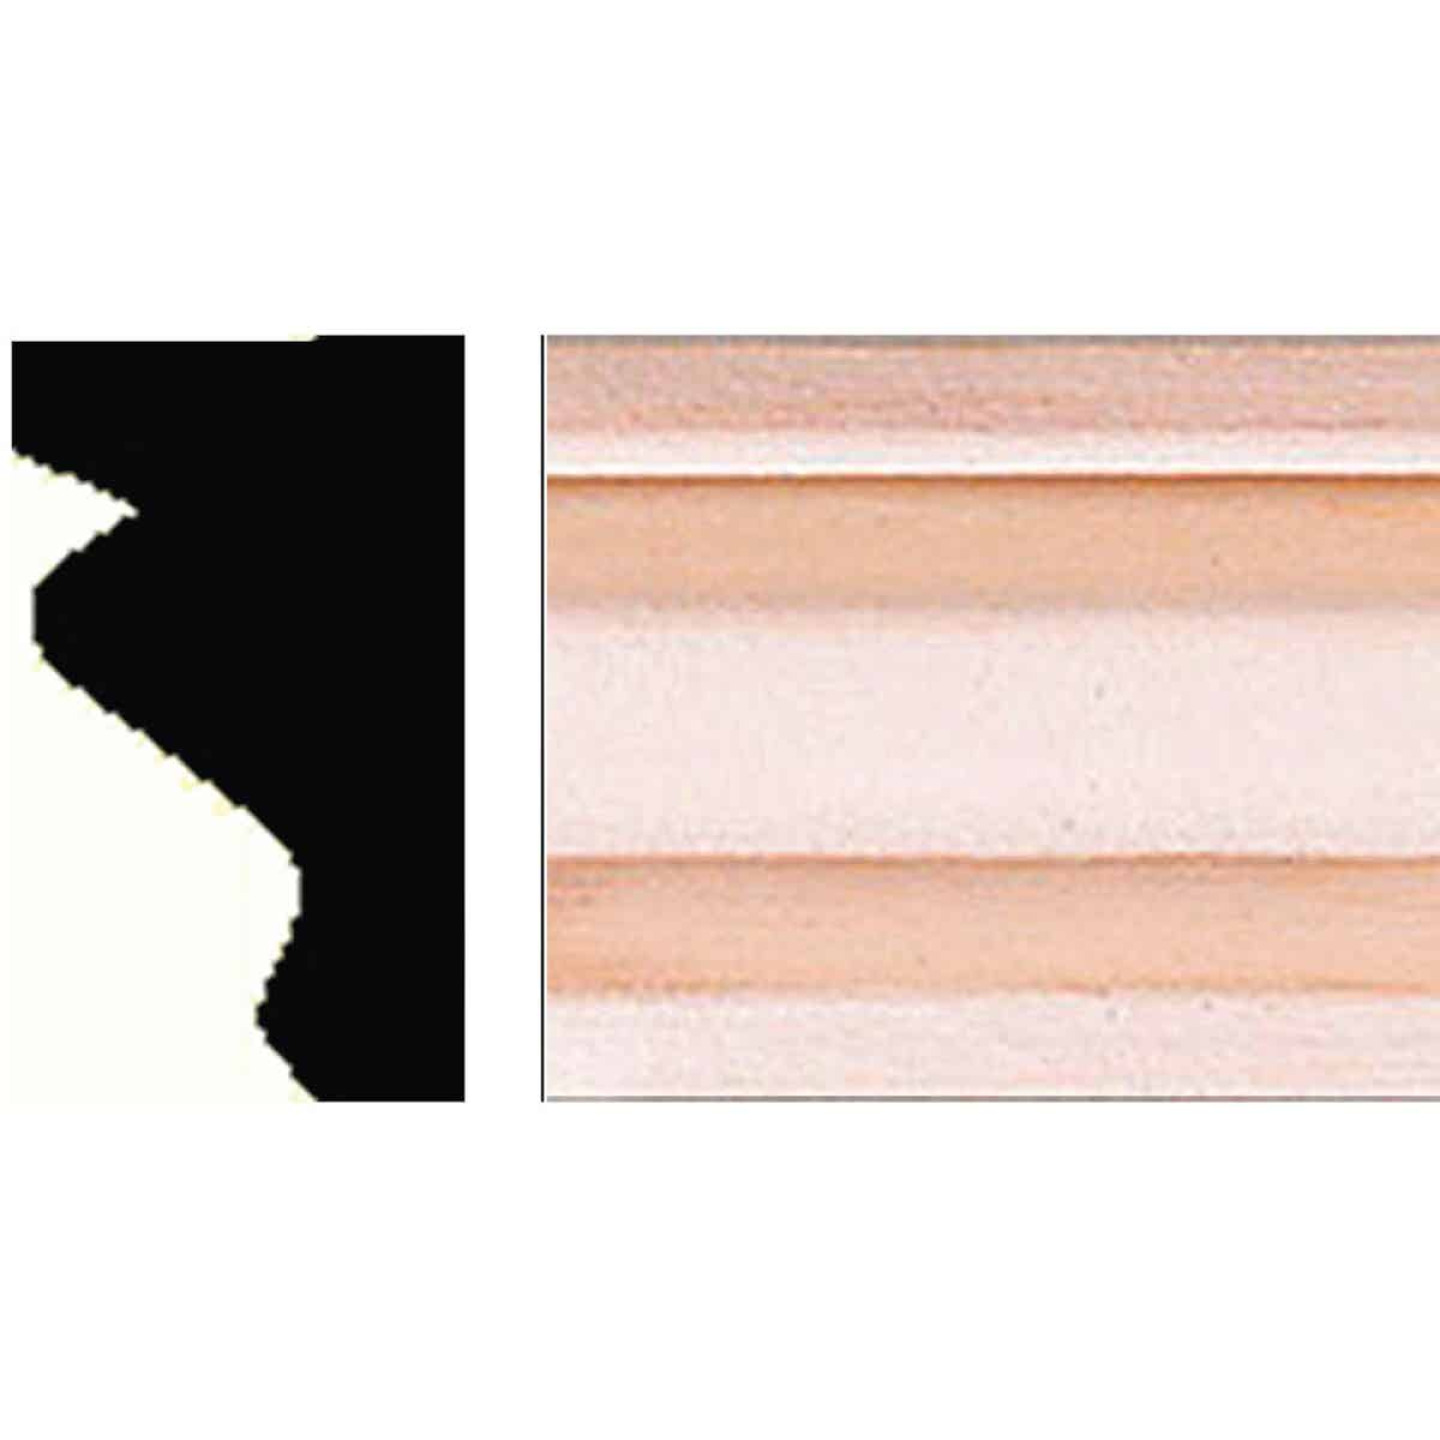 House of Fara 11/16 In. W. x 1-1/4 In. H. x 8 Ft. L. Hardwood Decorative Shoe Detail Molding Image 1